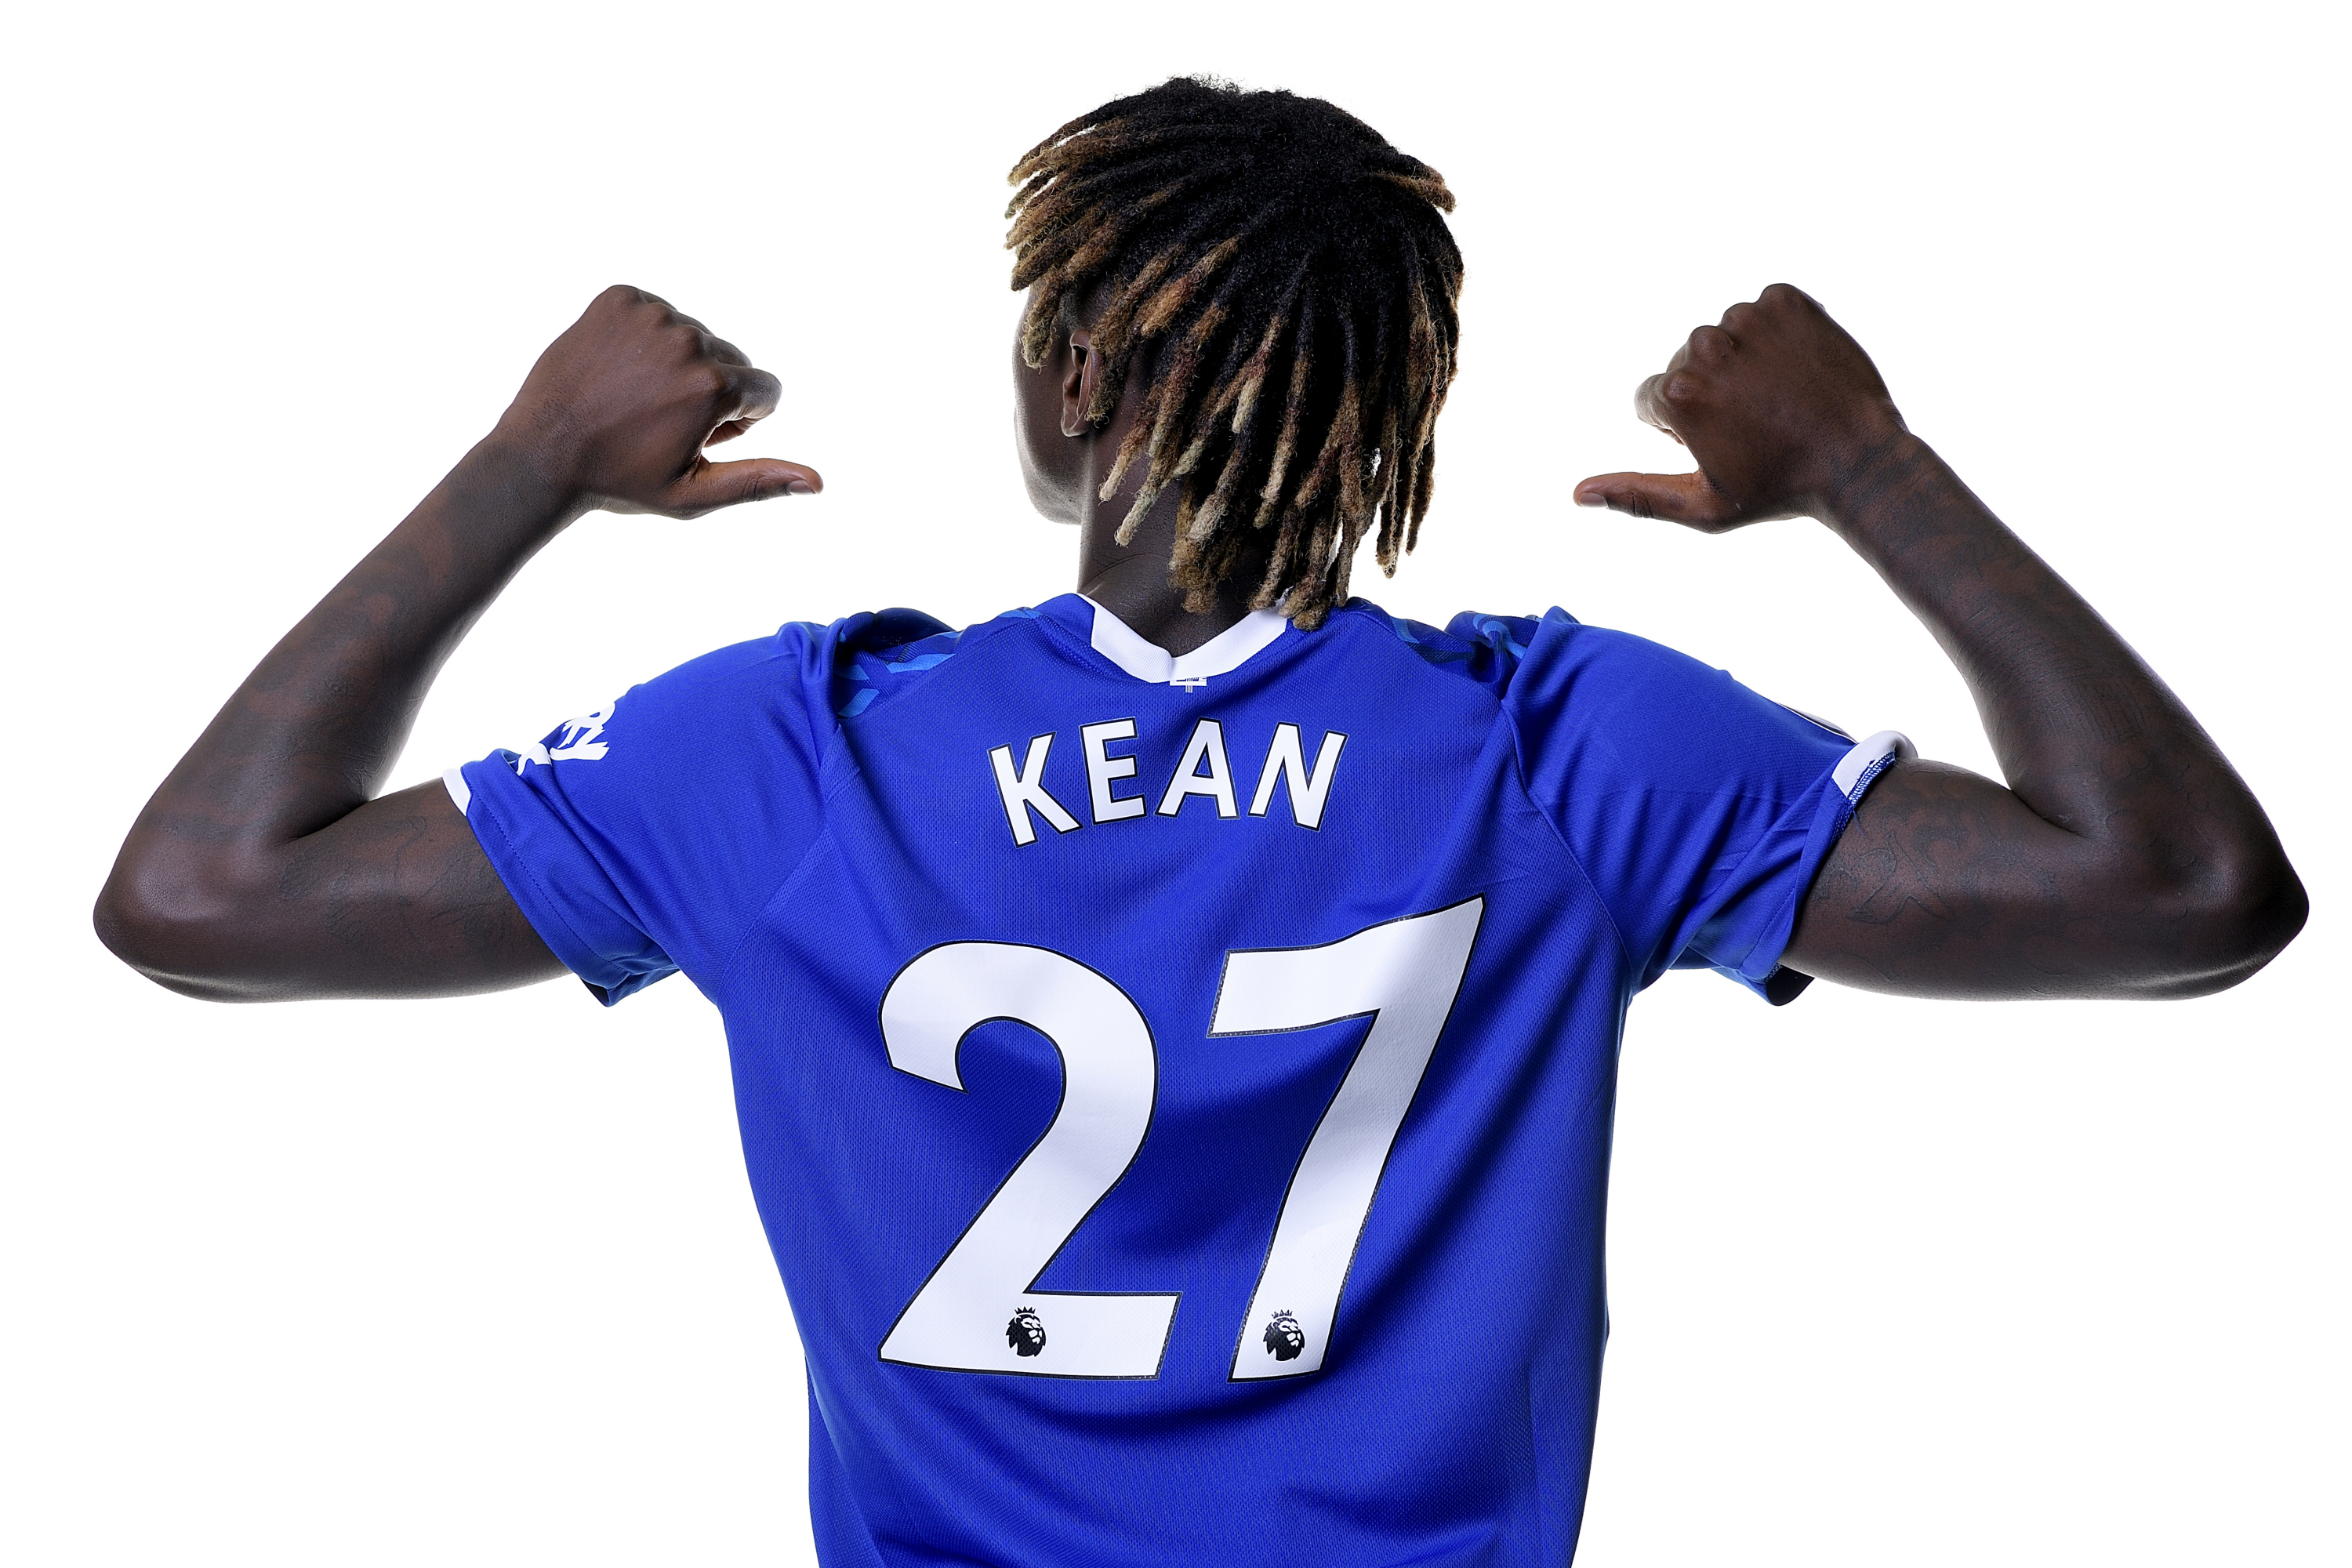 Kean To Wear Number 27 Shirt For Blues